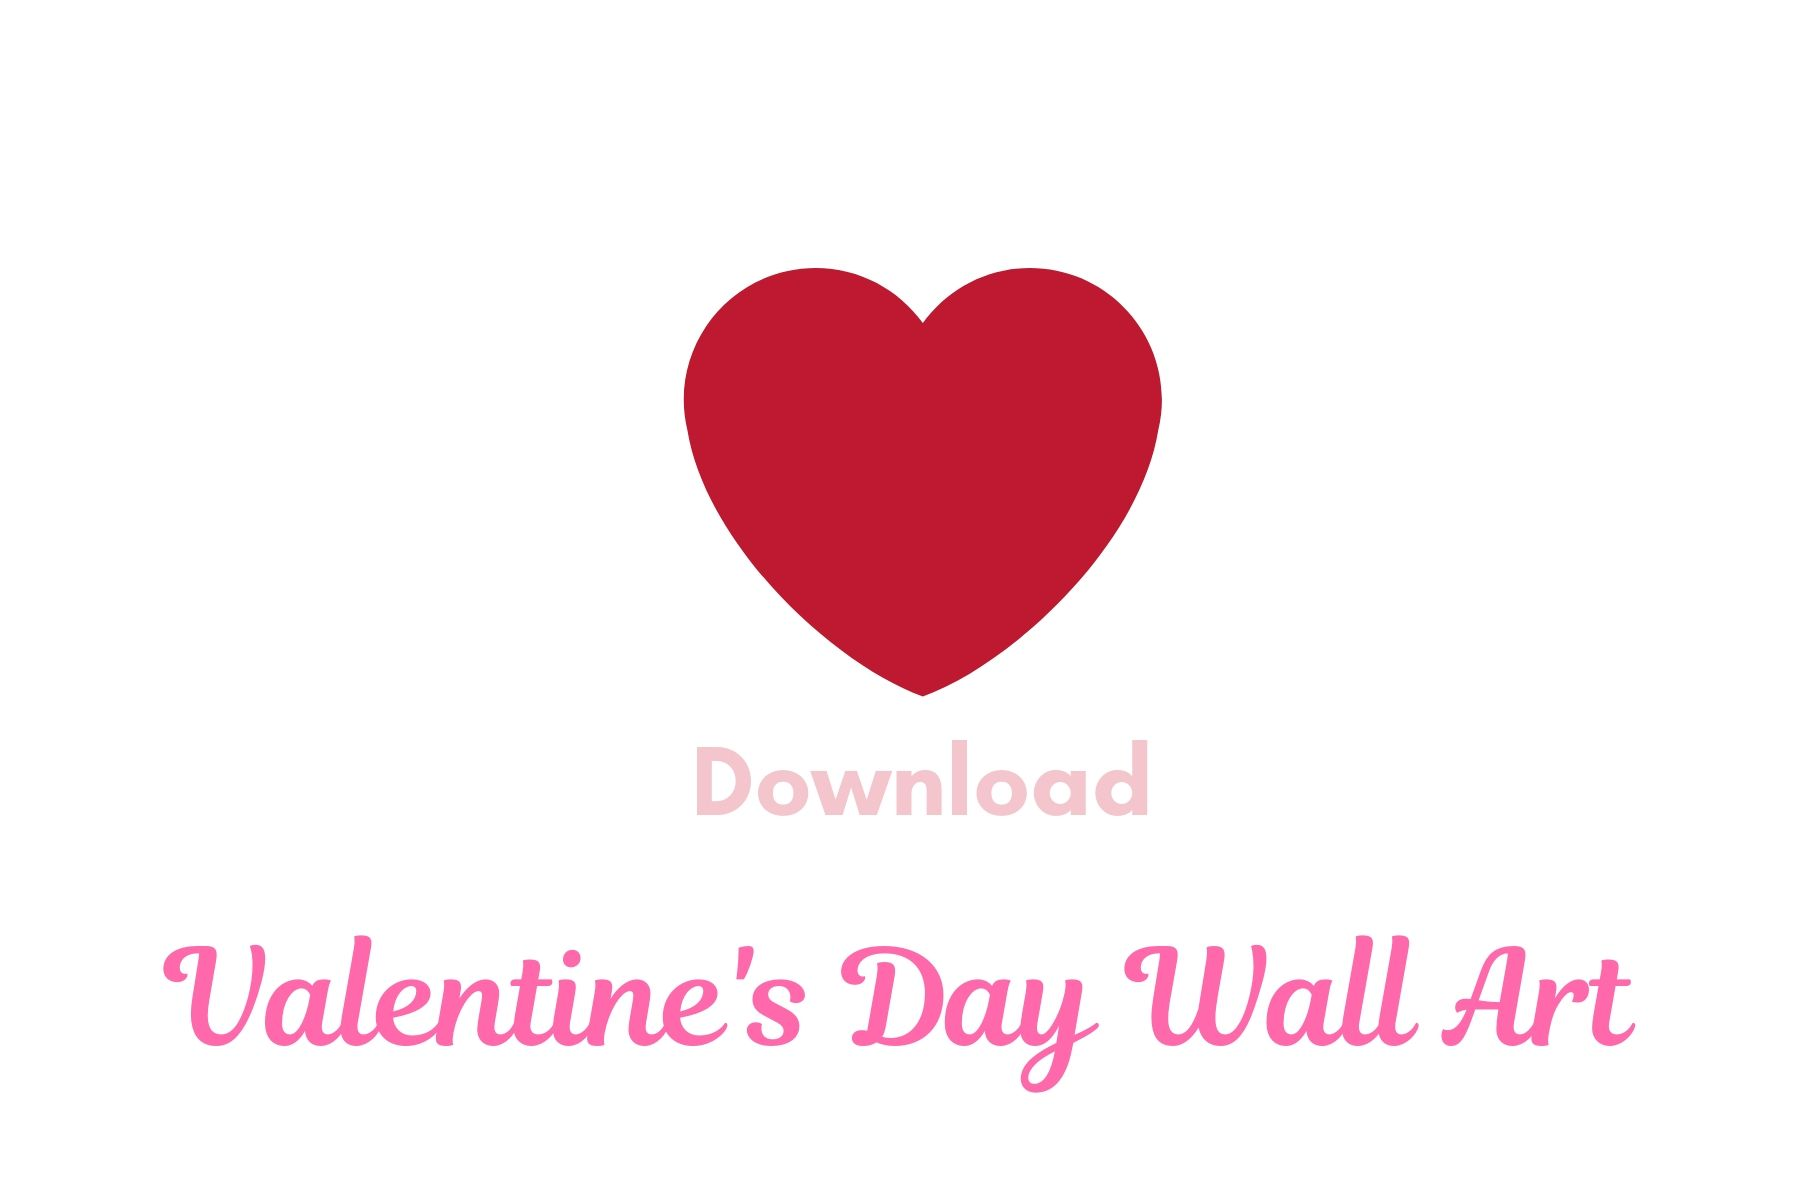 Download Valentine's Day Wall Art #ValentinesDay #ValentineWallArt #DIY #WallArt #DIYDecor